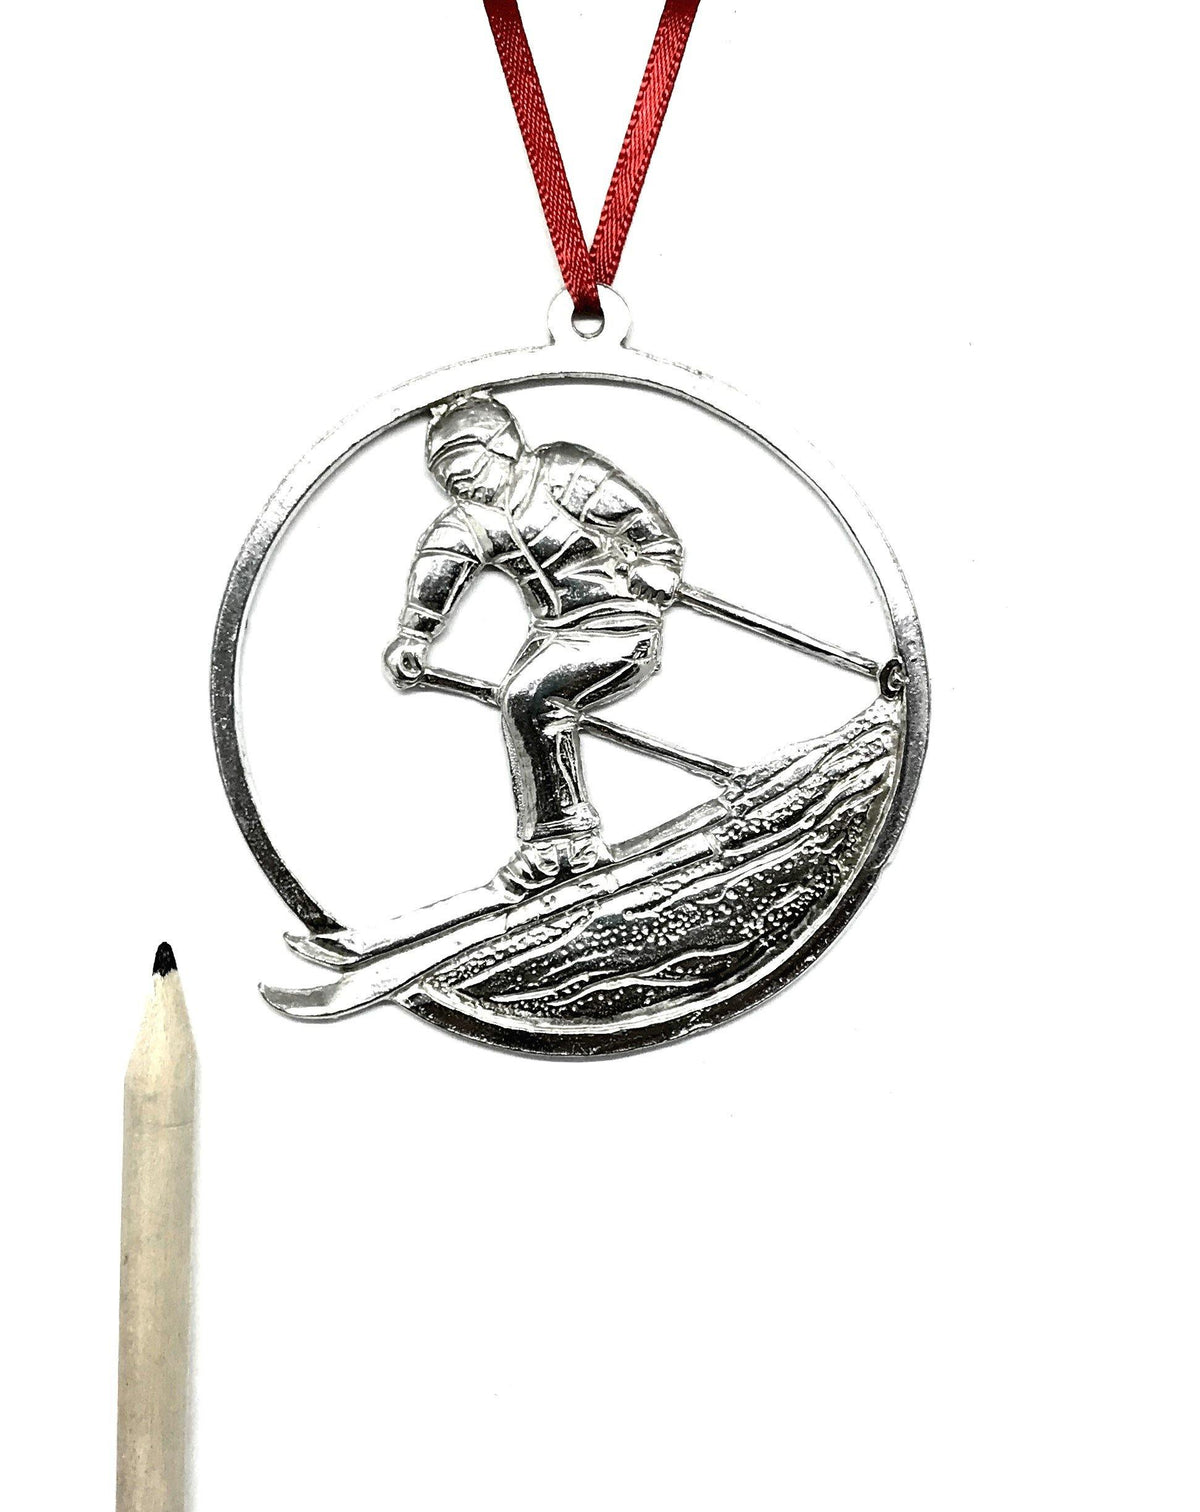 587 Snow Skier Skiing Coach Team Keepsake Christmas Holiday Ornament Pewter - House of Morgan Pewter